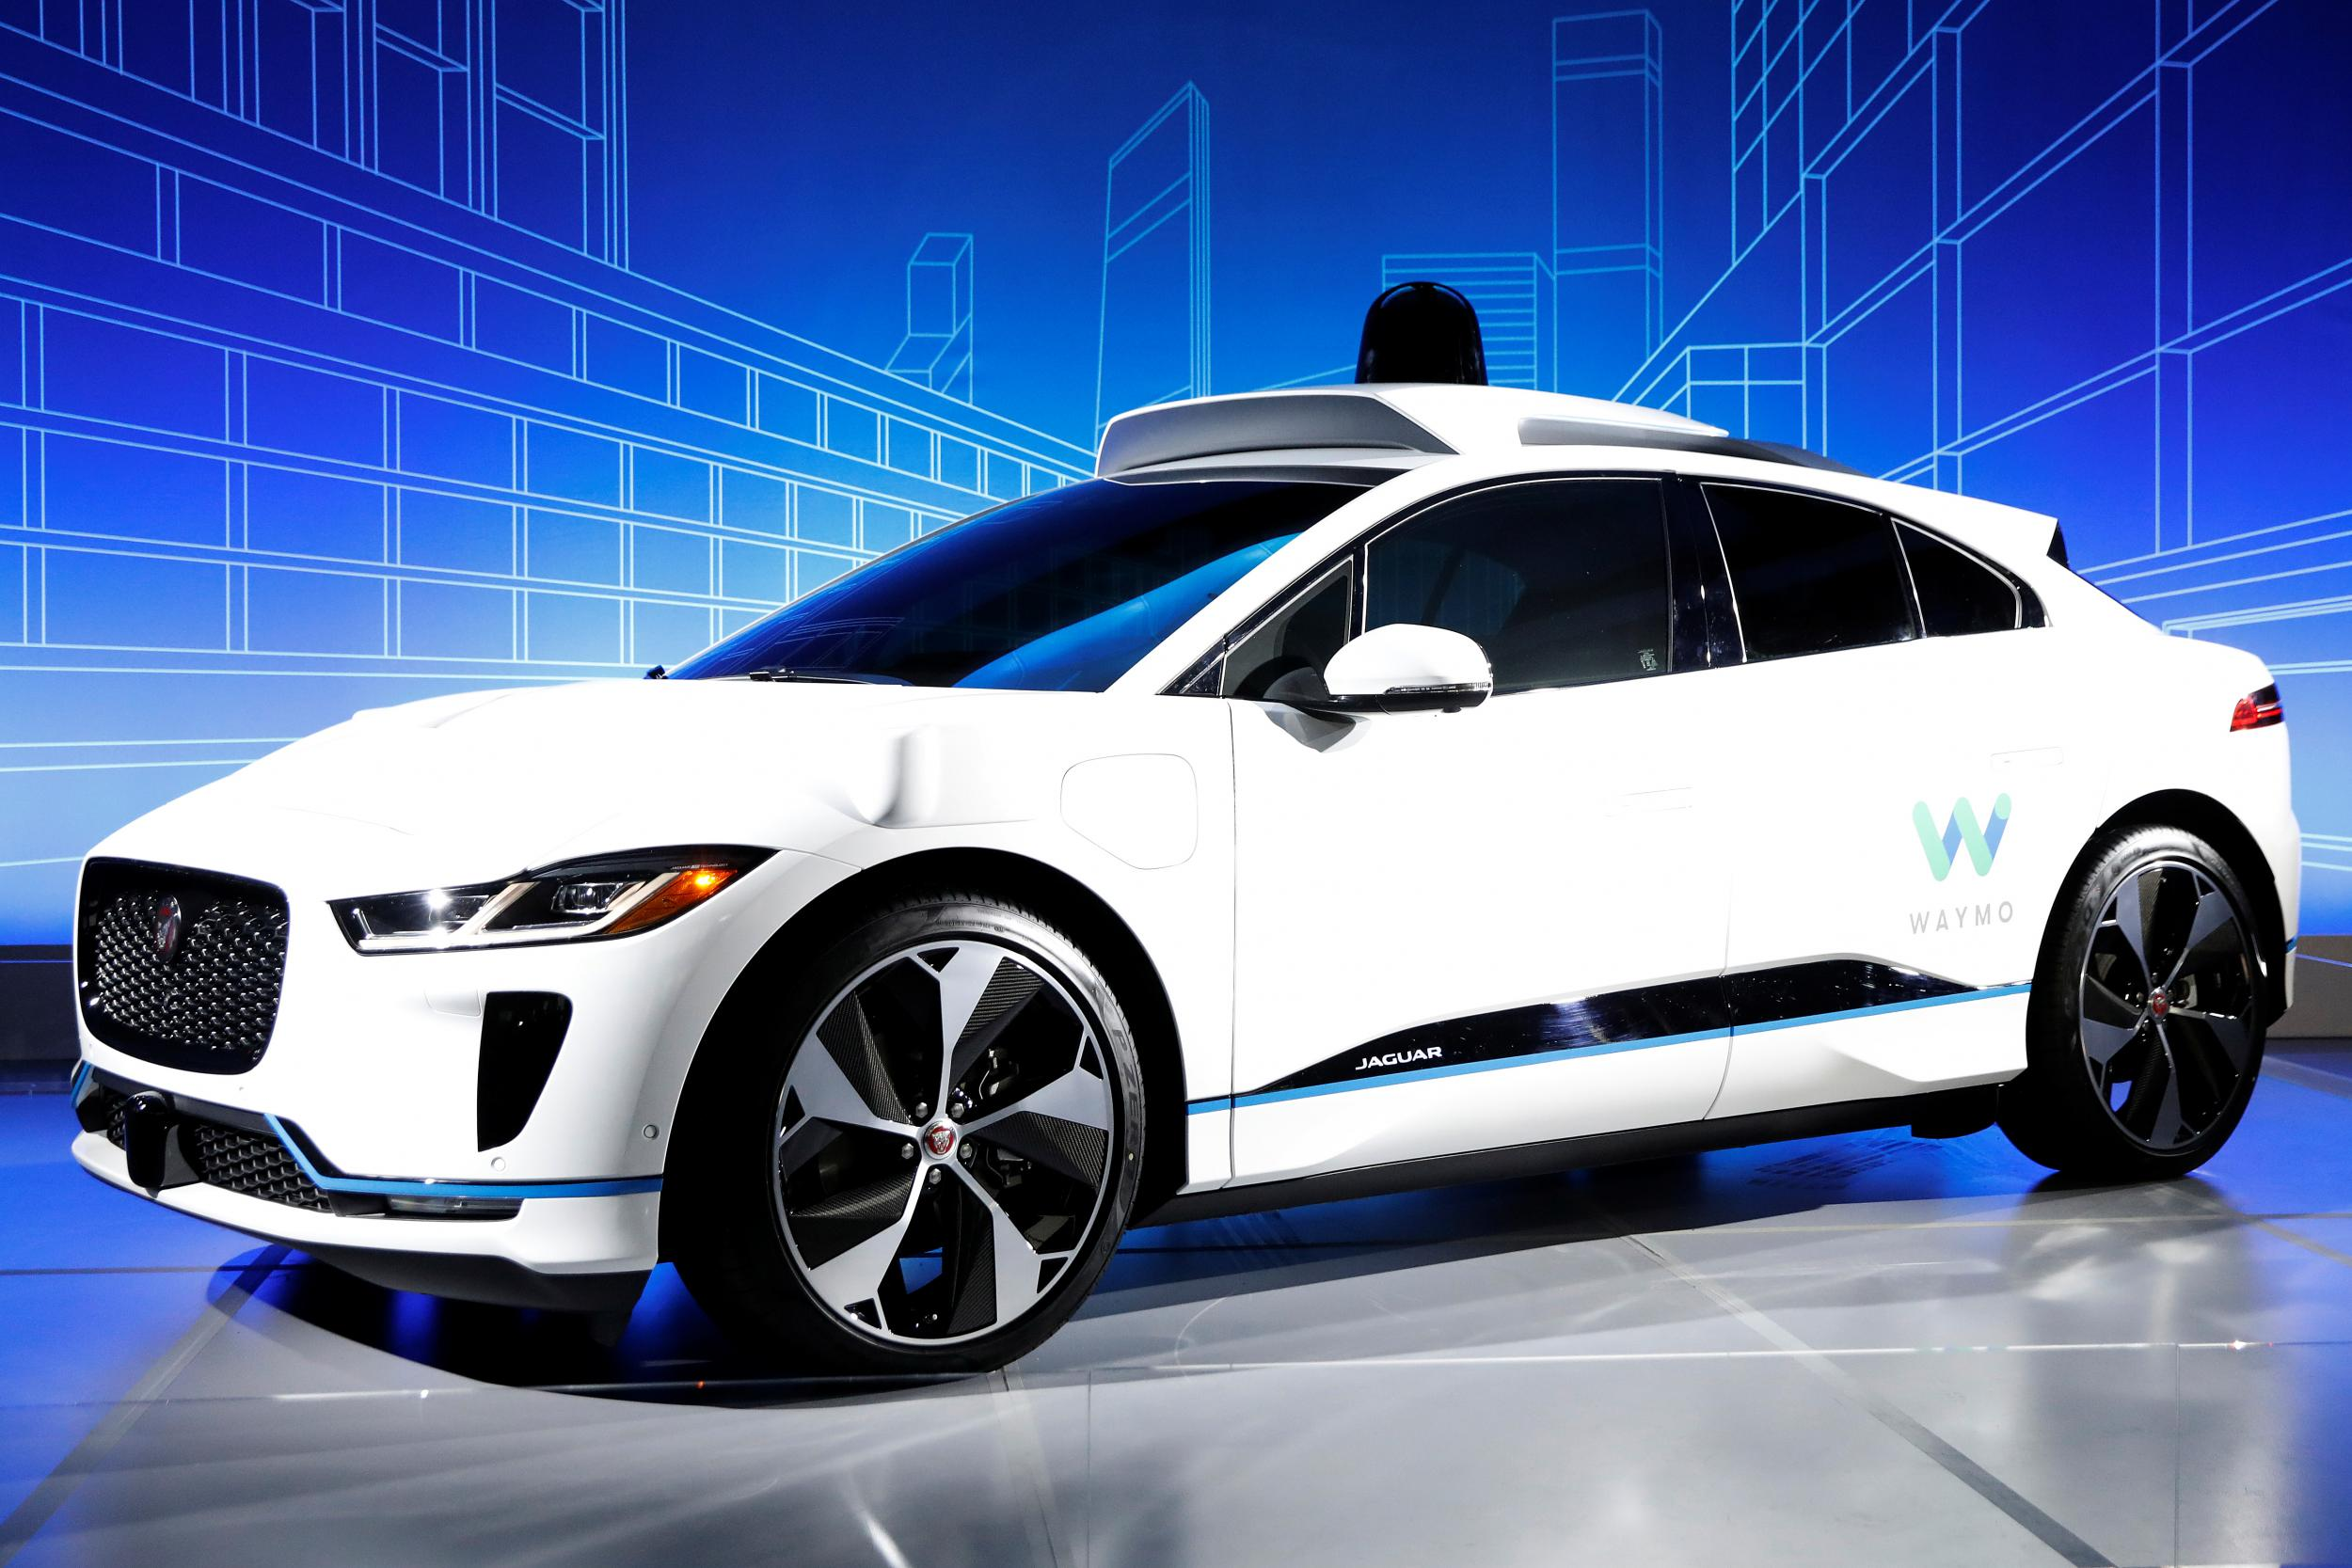 Google spin-off Waymo set to beat Uber and Lyft to launch